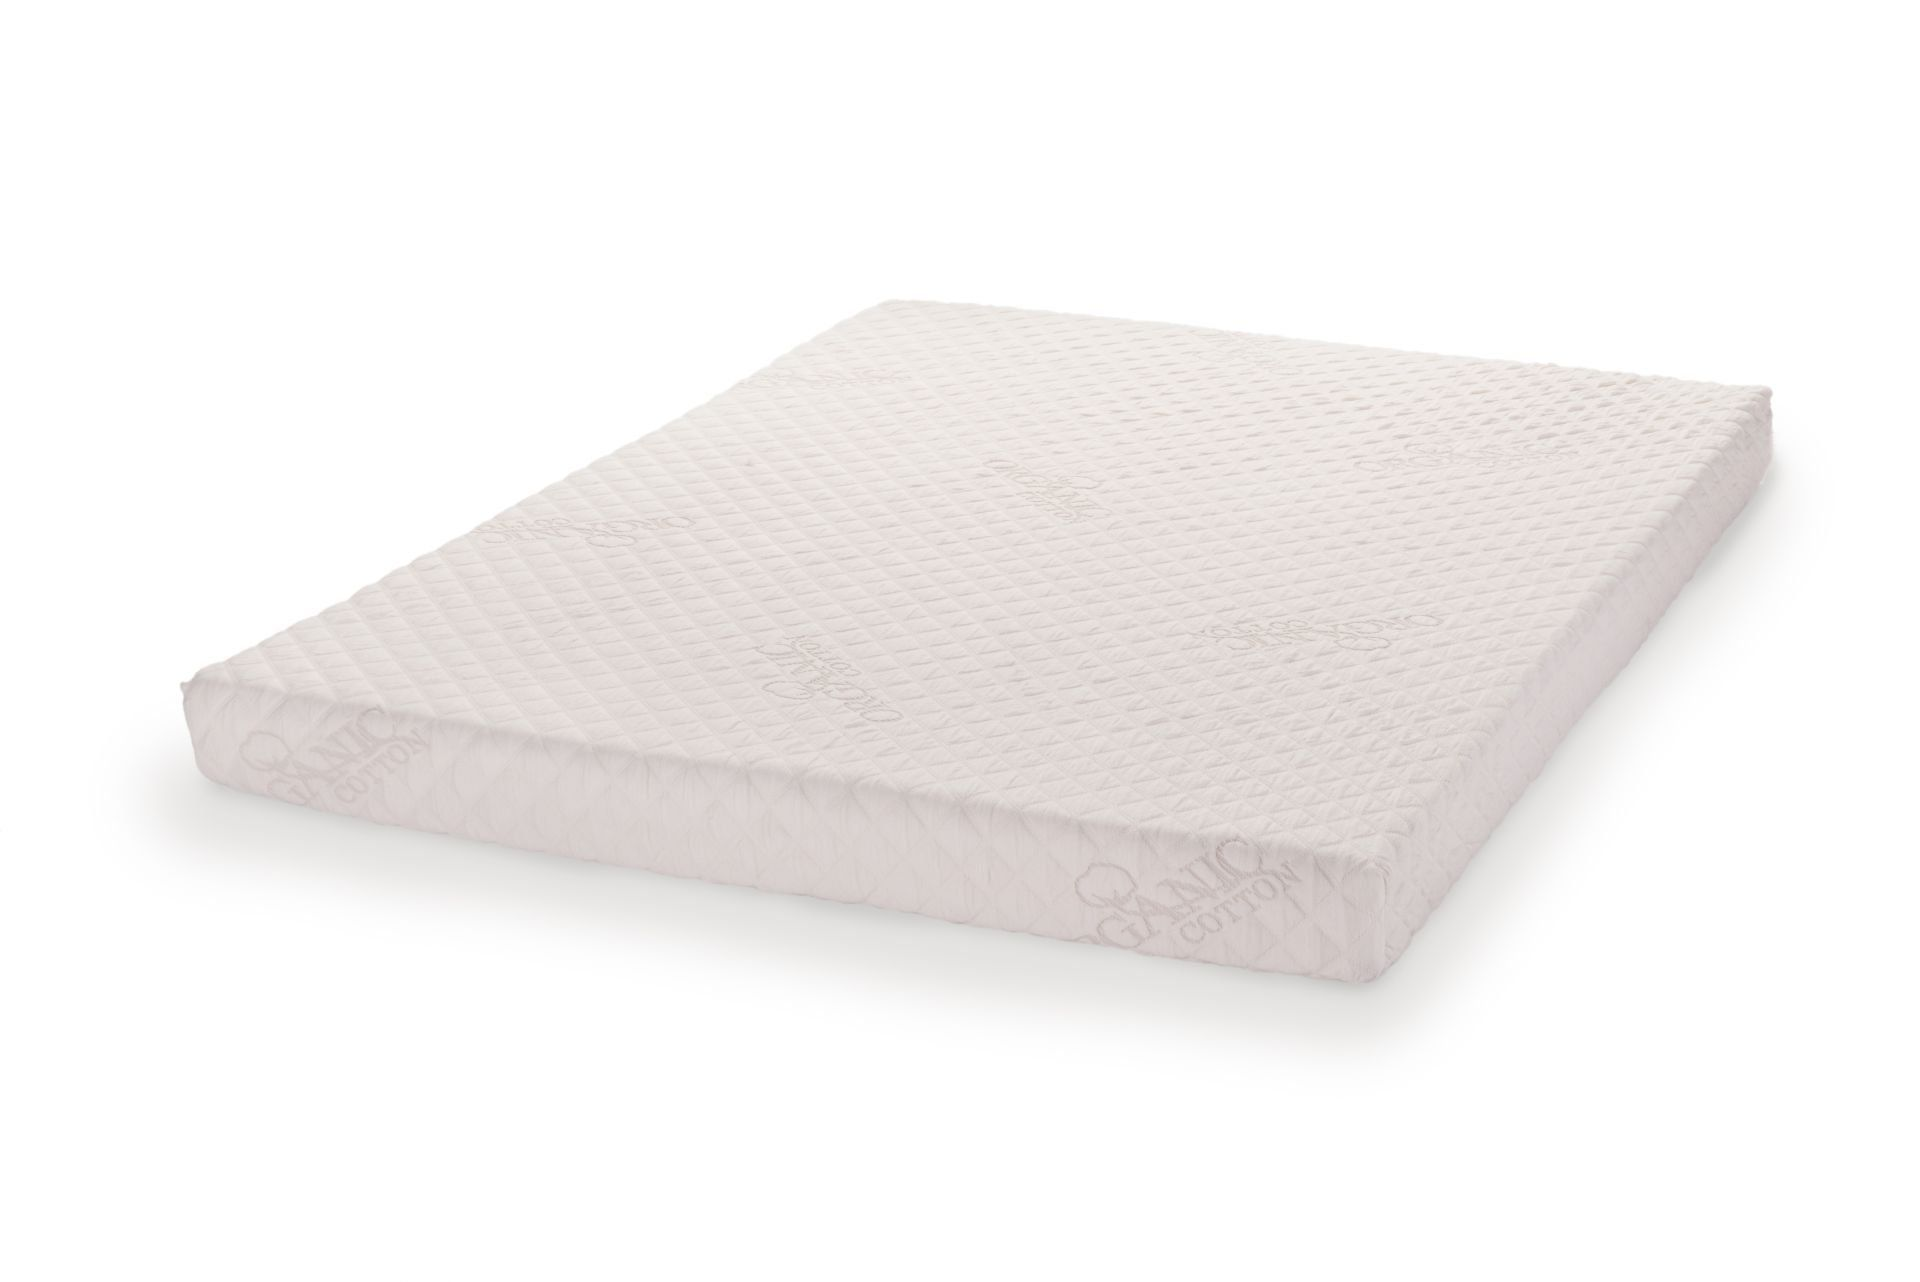 Plushbeds Natural Latex Sofa Bed Mattress Queen To View